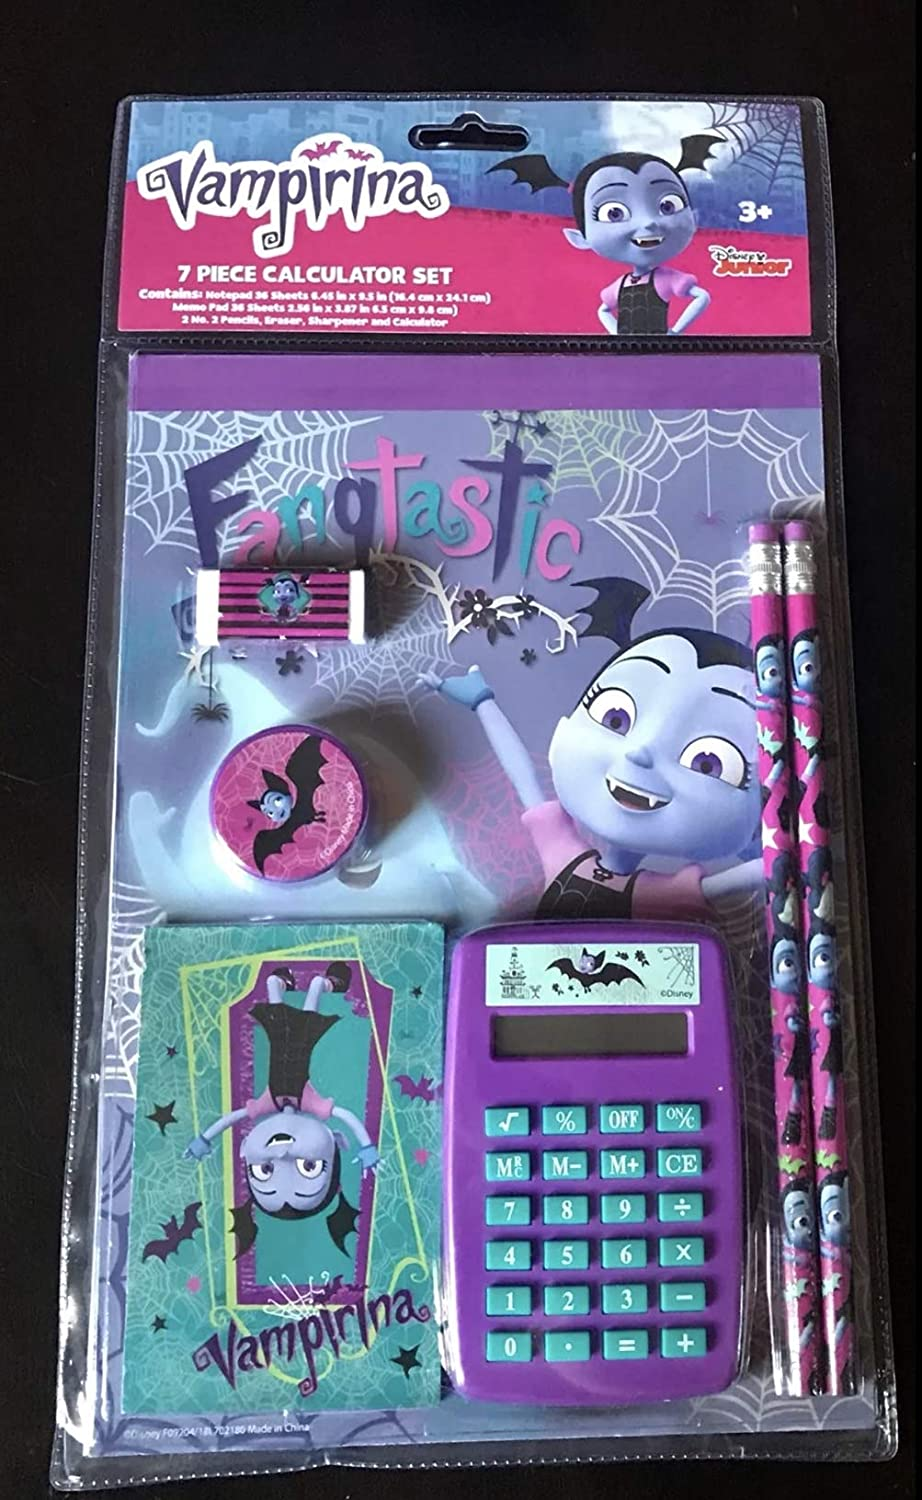 Vampirina 7 Piece Calculator Set Innovative Designs